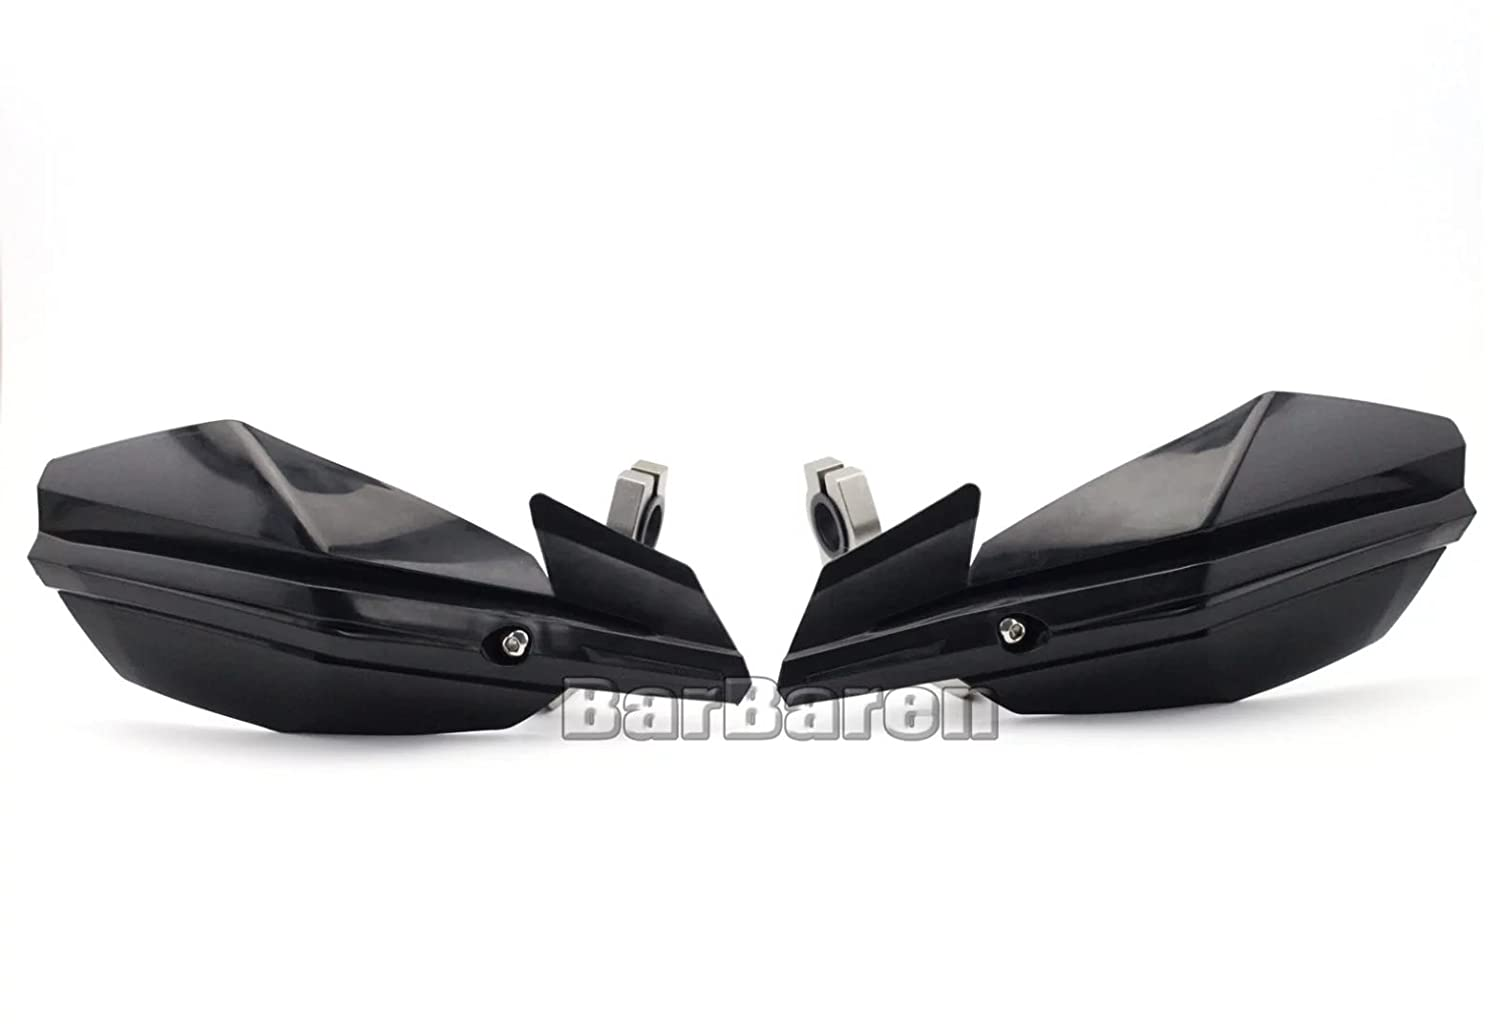 Off-Road Motorbike 22mm Handguards For Suzuki DR200SE DR650SE DRZ400 RMX250//450Z